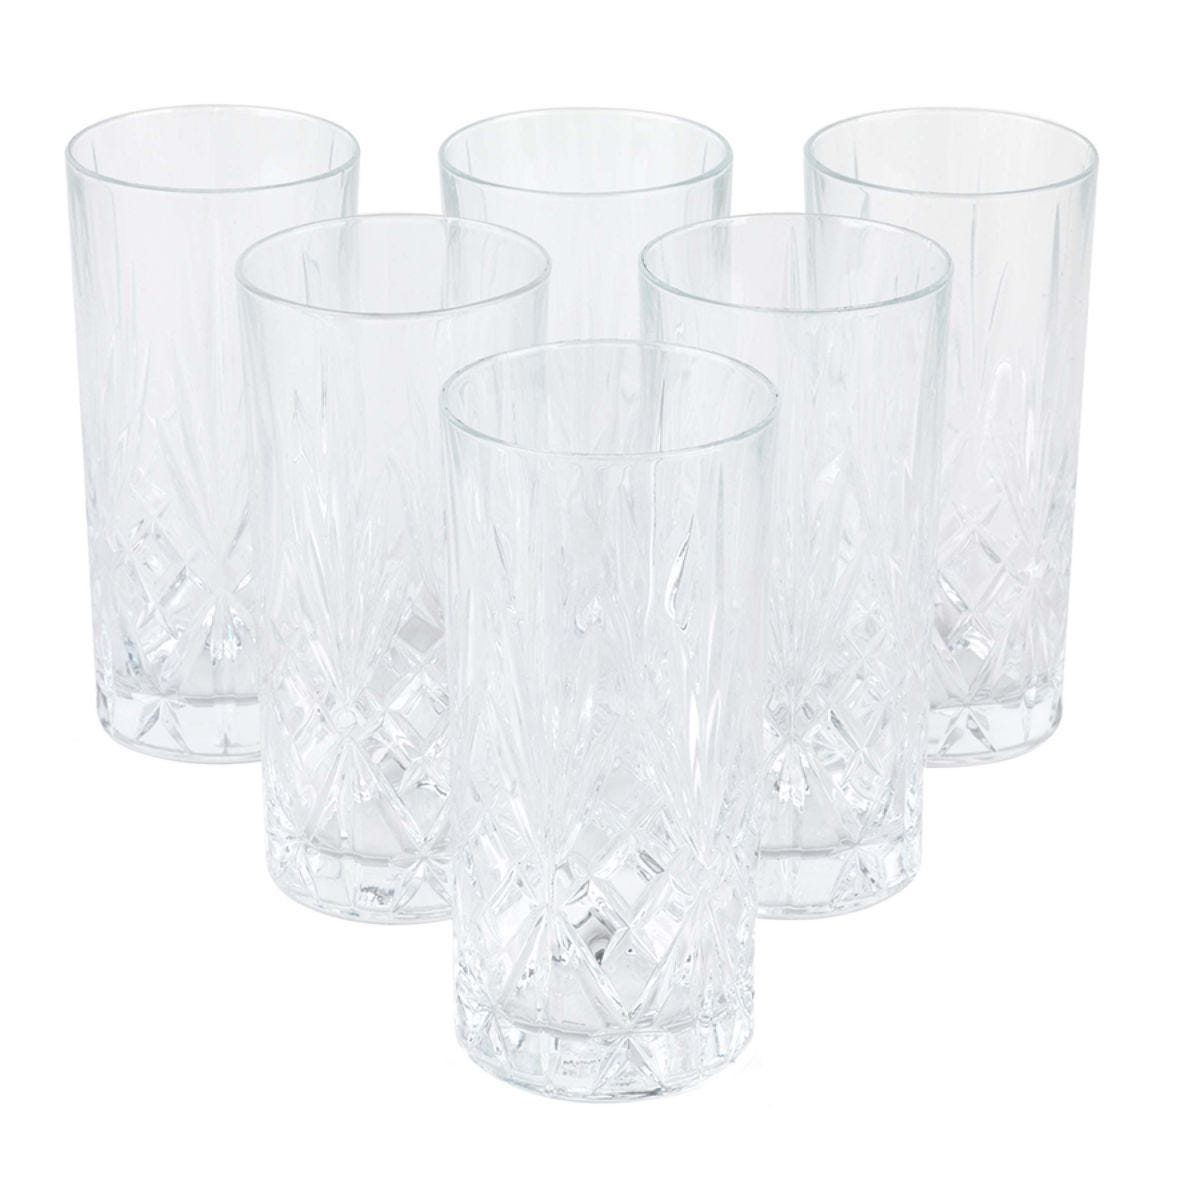 RCR Melodia Highball Glasses - Set of 6